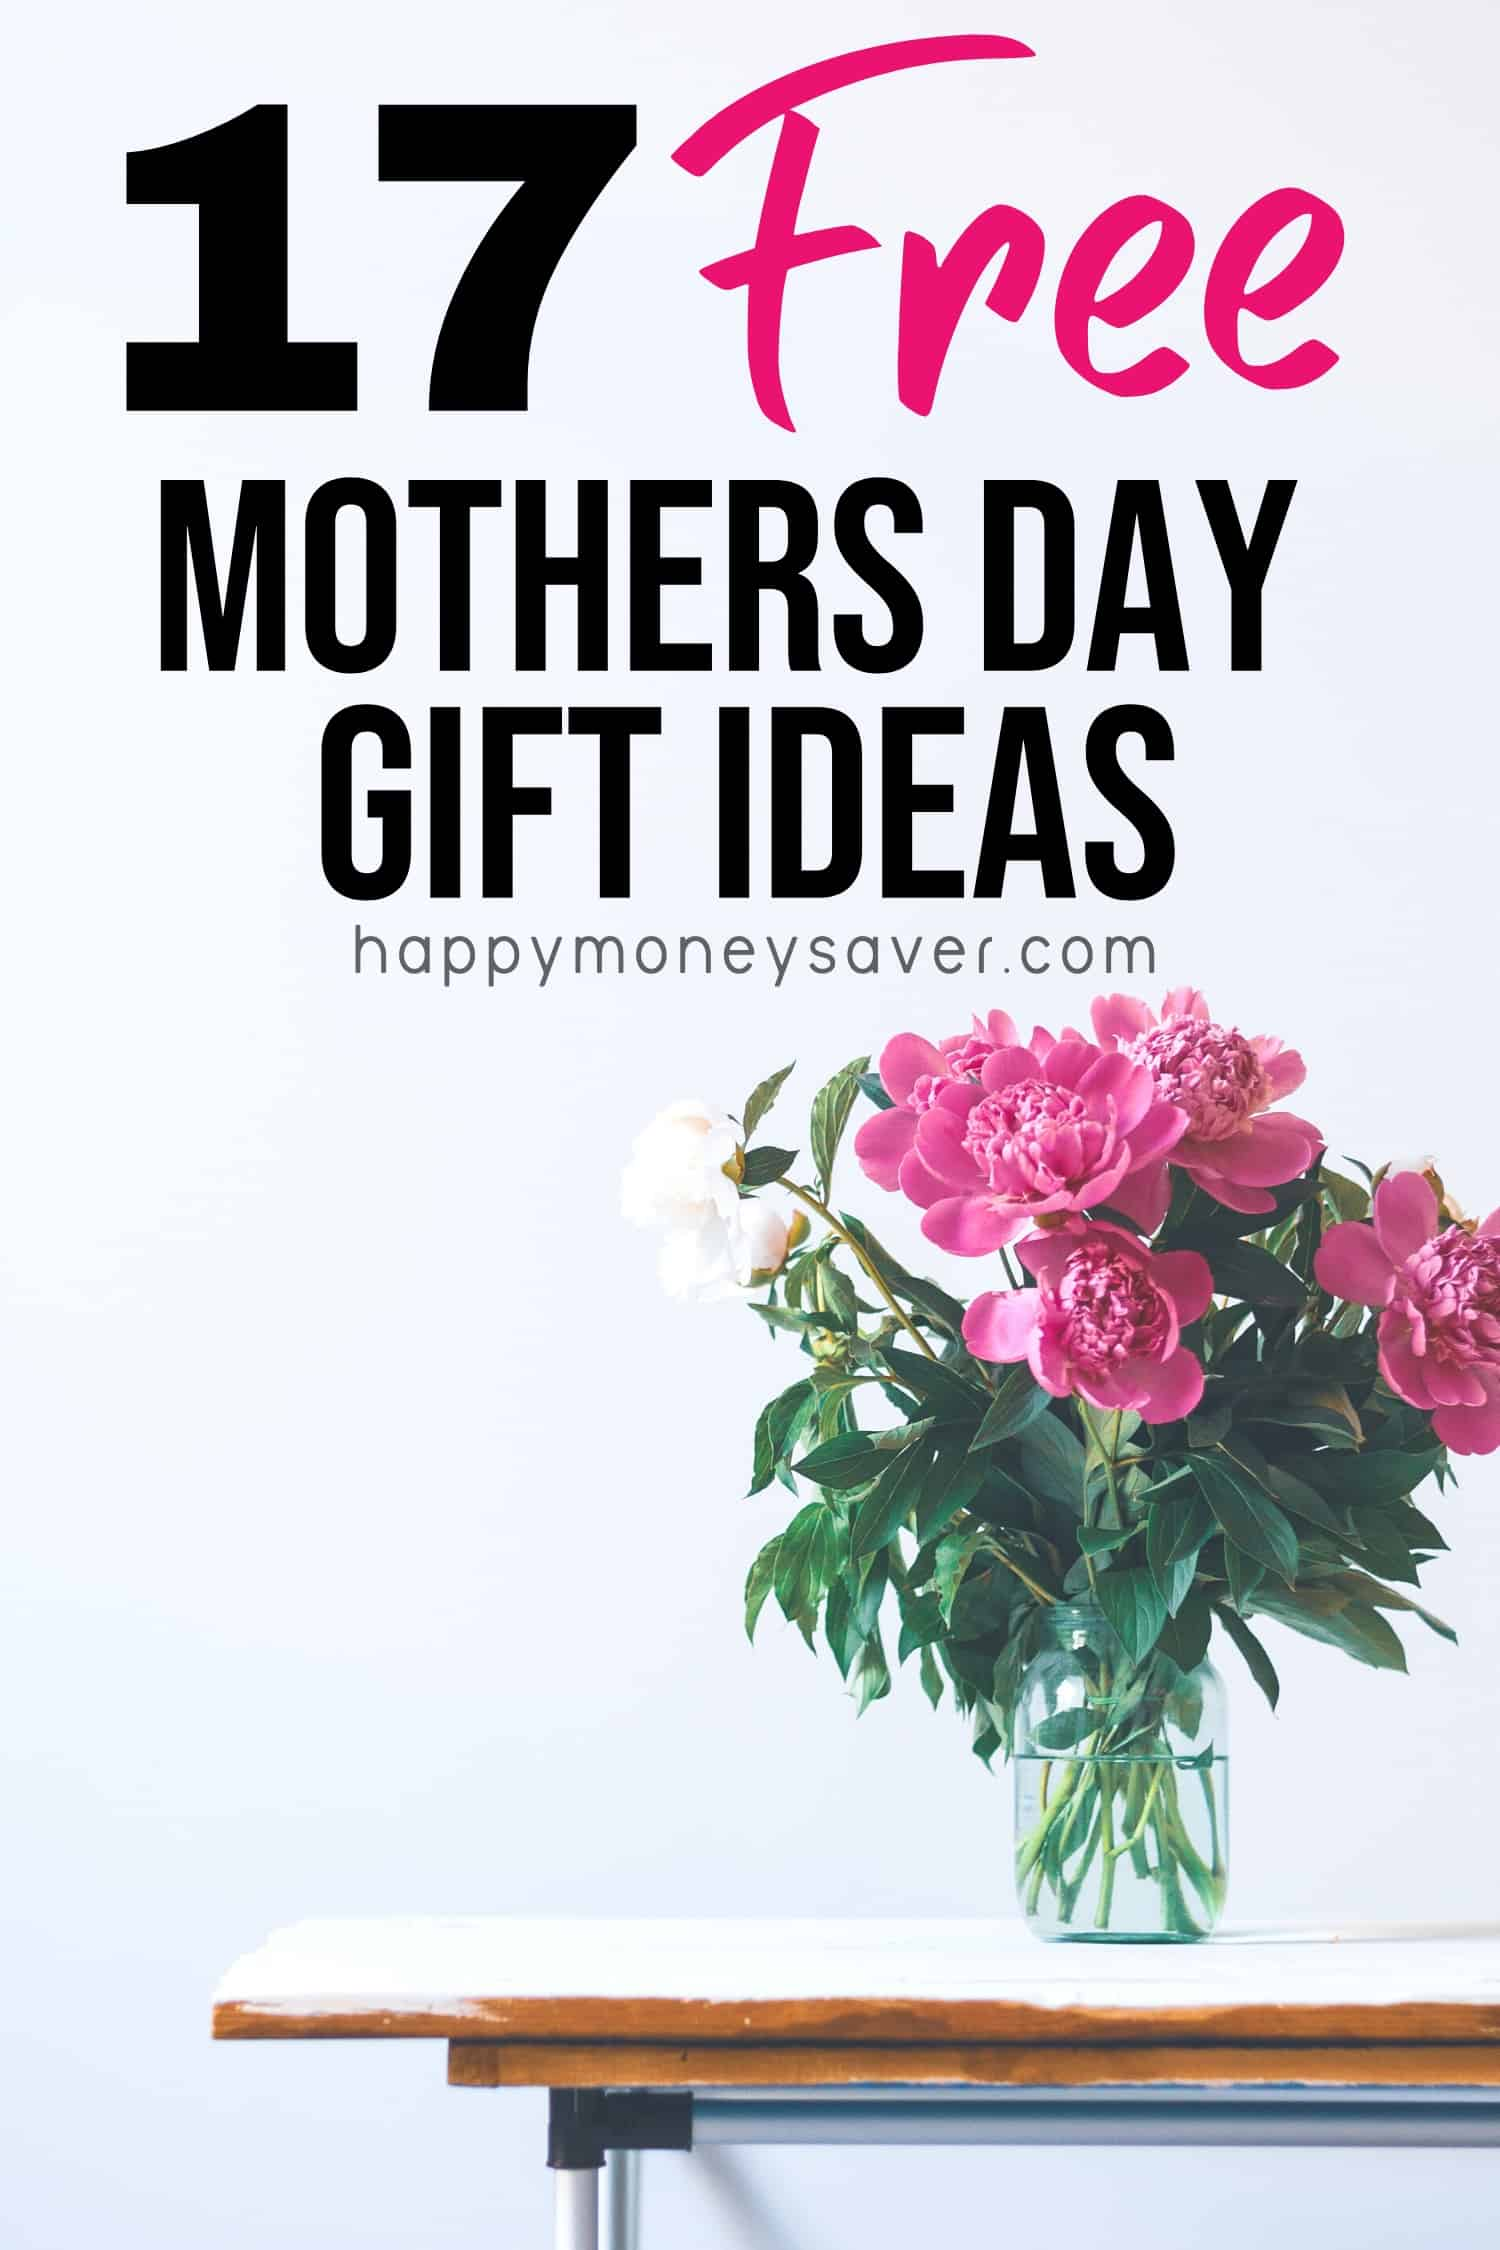 17 free Mother's Day Gift Ideas You'll love - picture of pink flowers in vase.